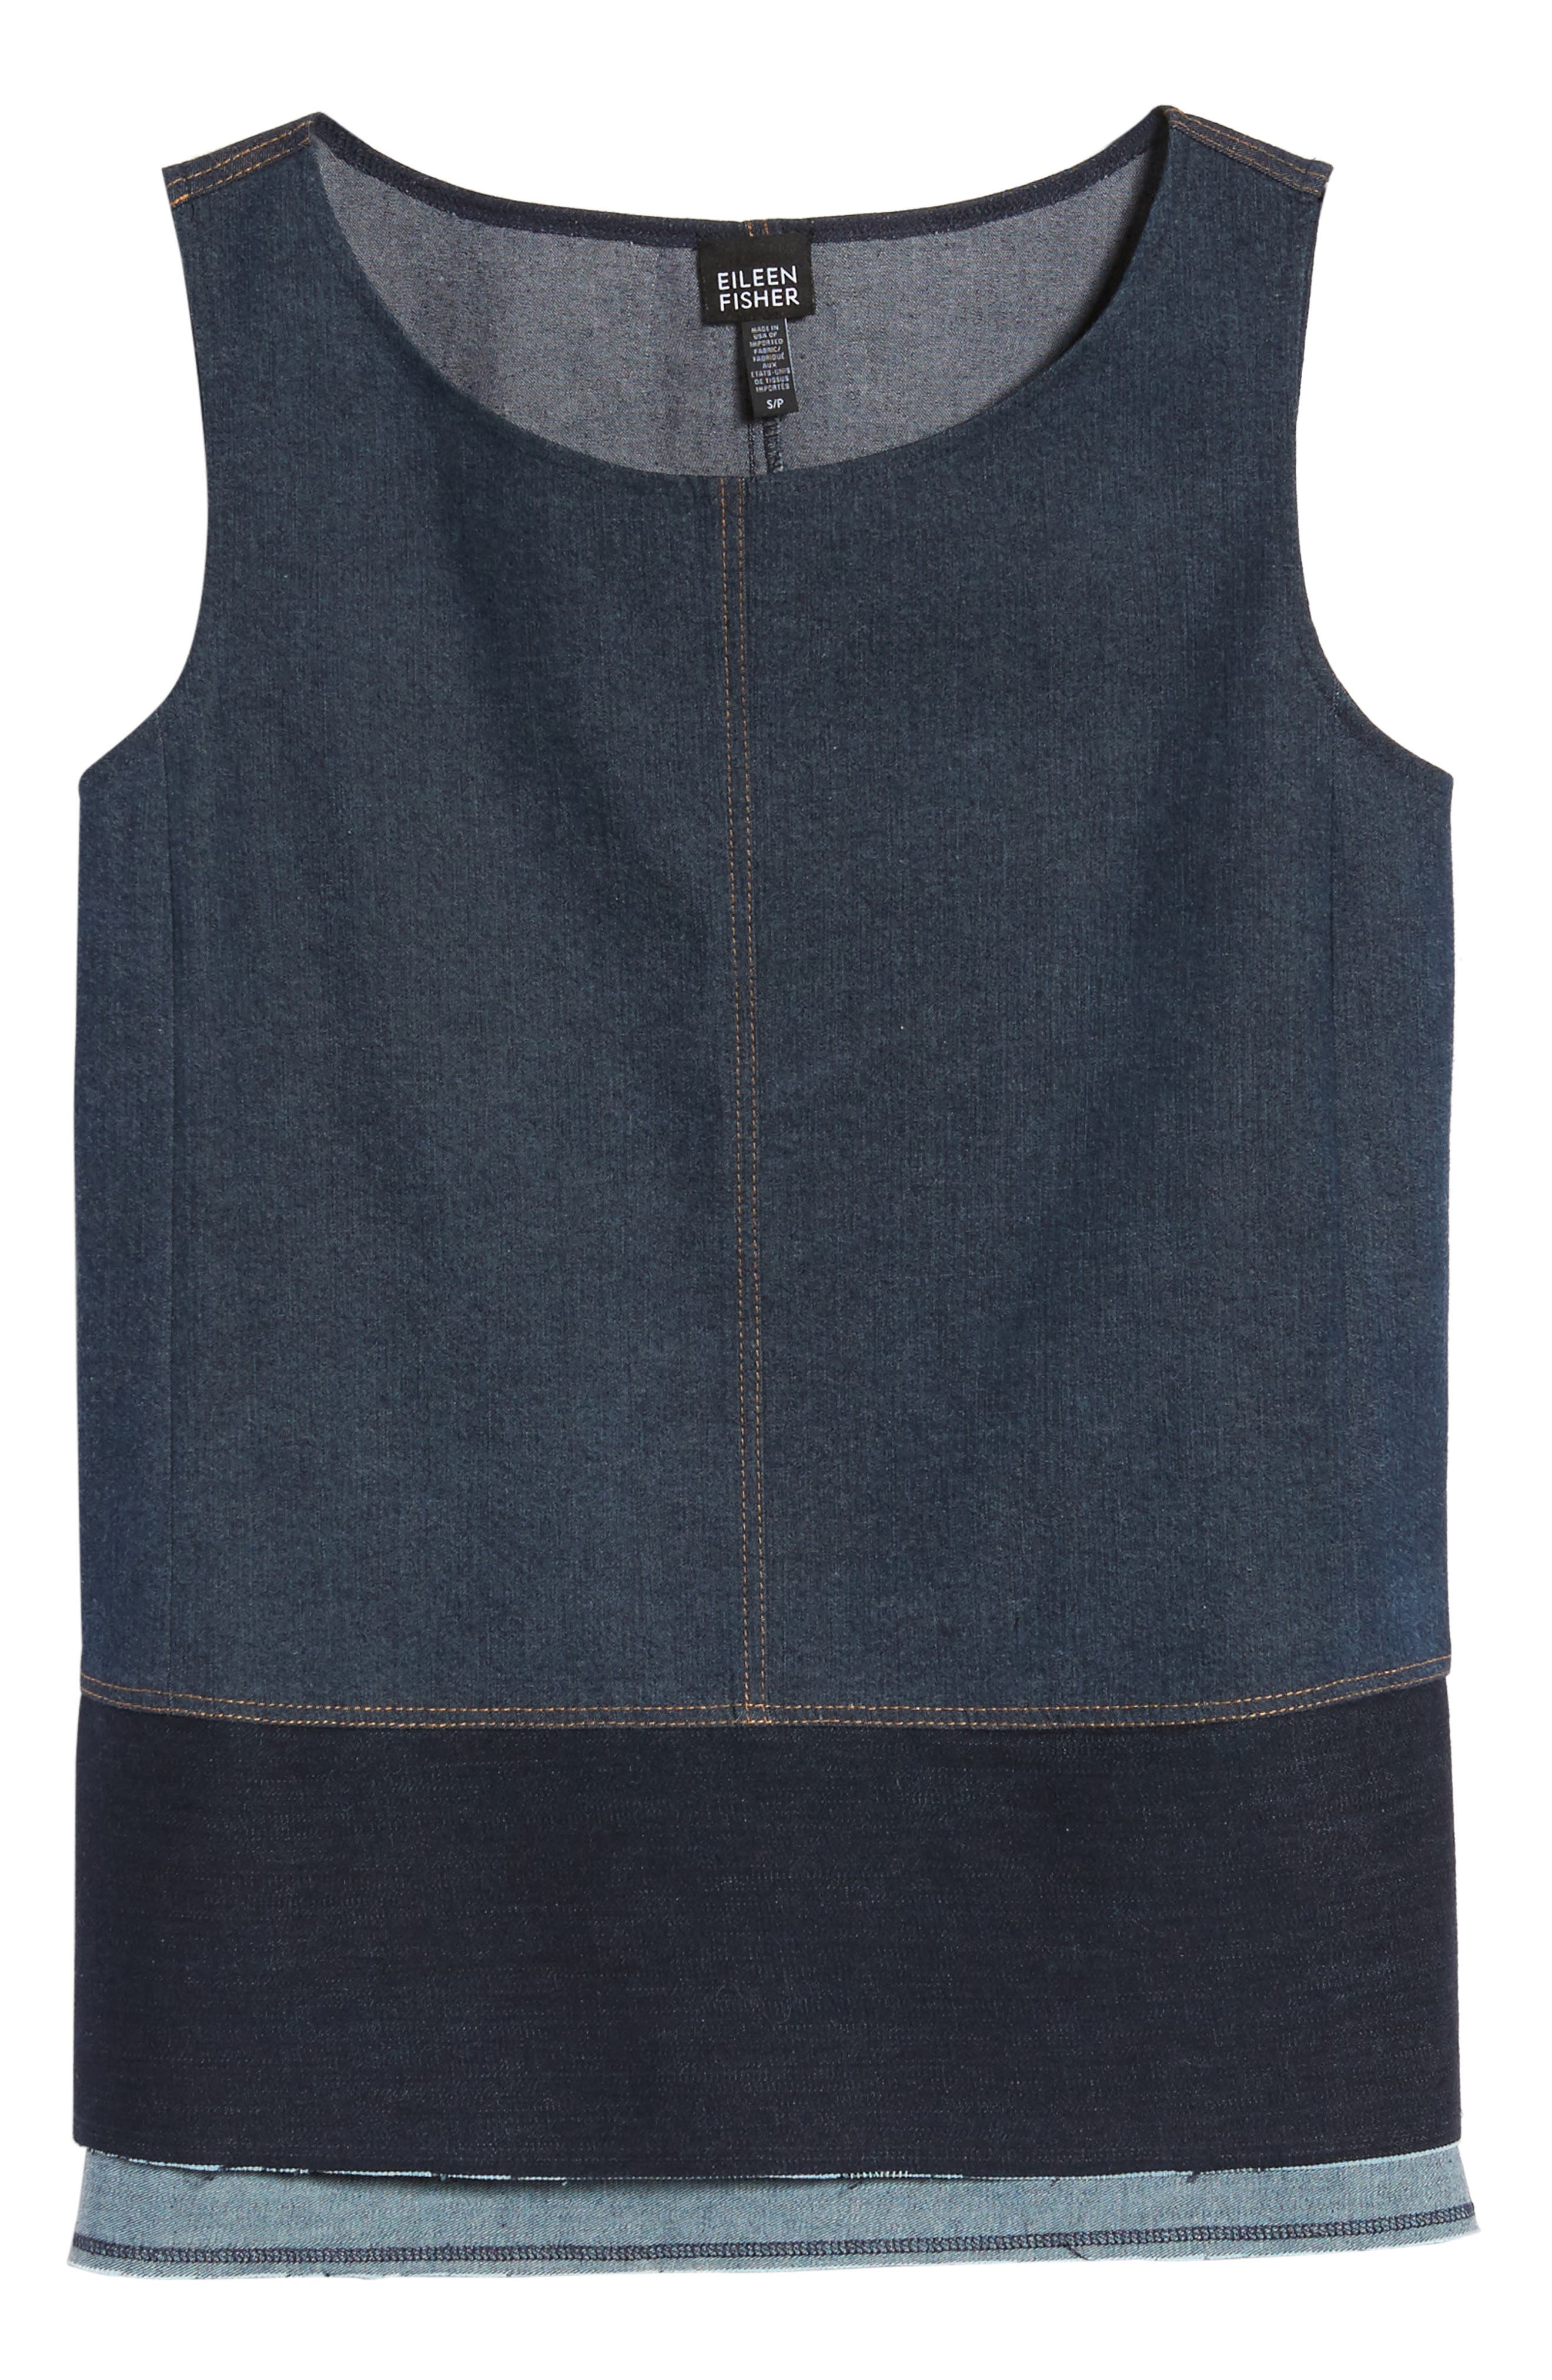 Alternate Image 6  - Eilen Fisher Denim Shell (Nordstrom Exclusive)